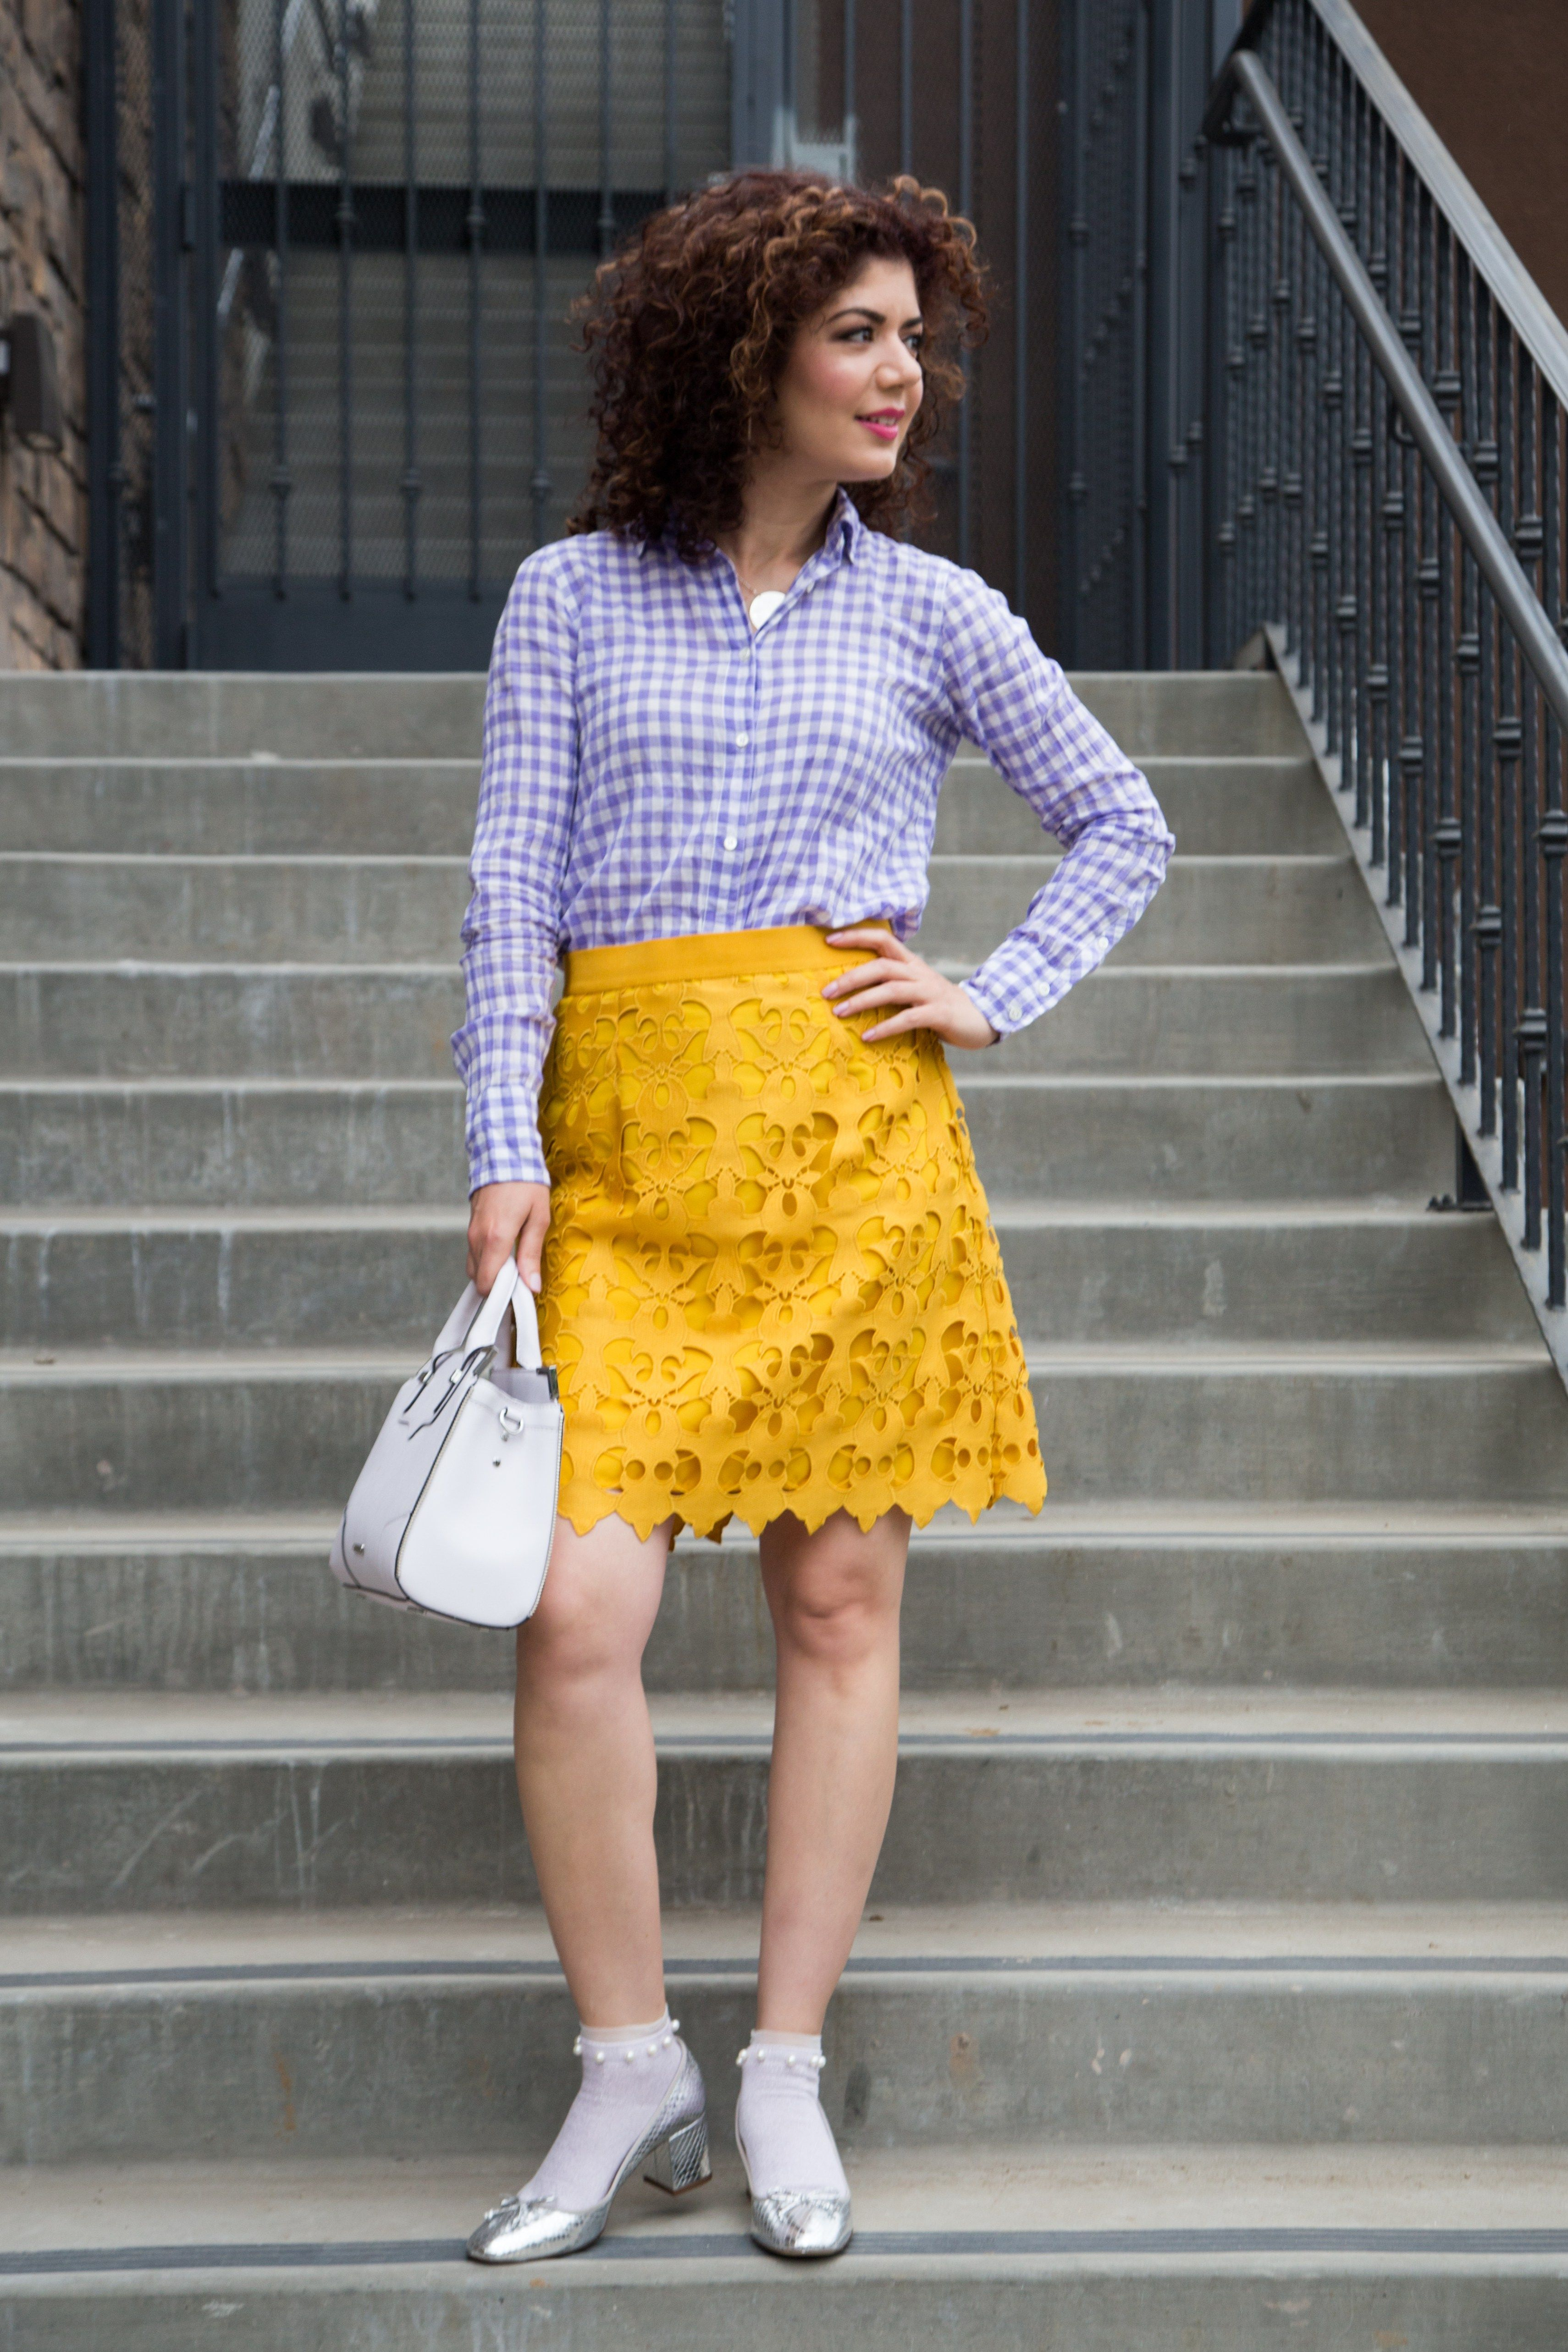 86449312ebc Does a Mustard and Lavender Outfit Work